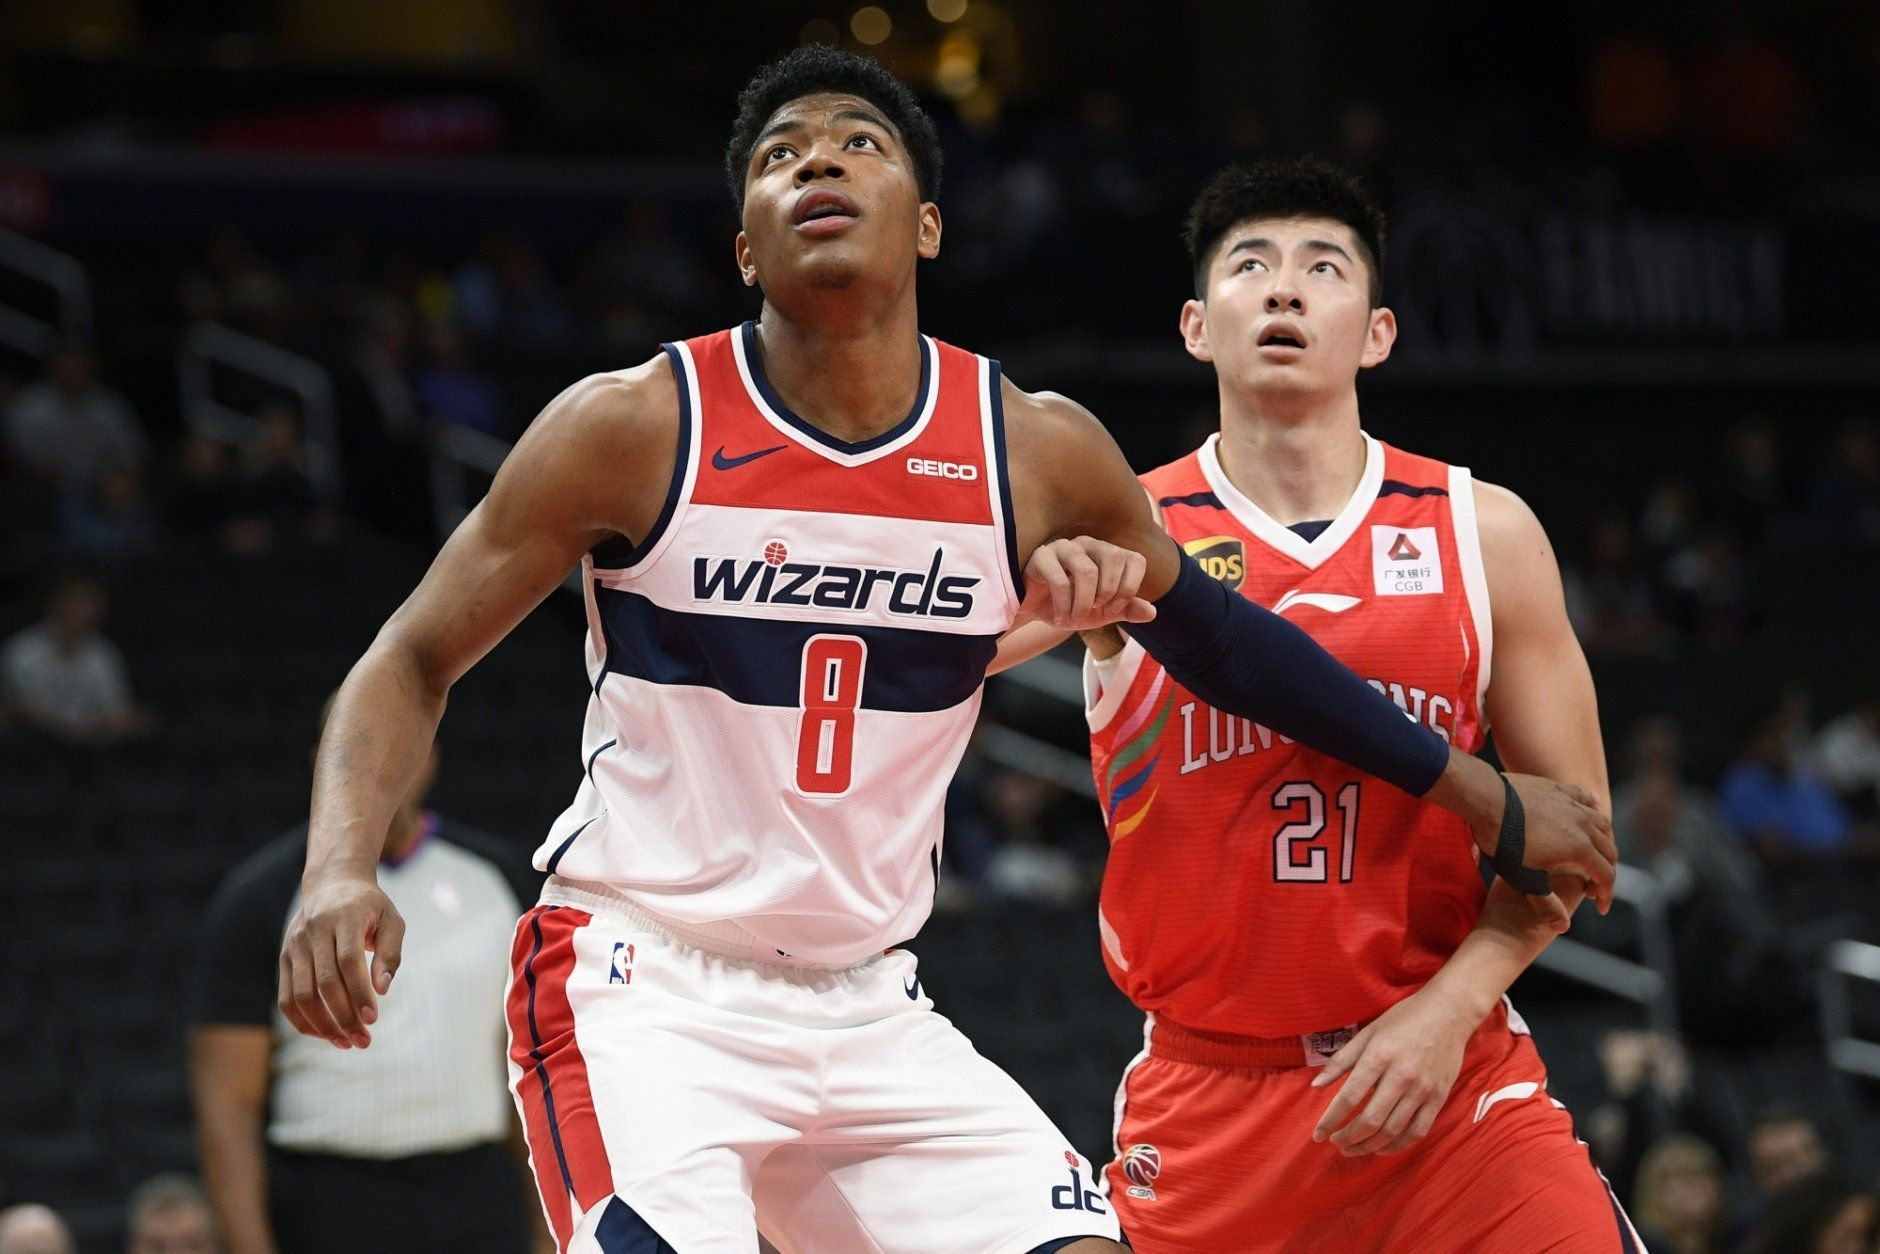 Washington Wizards forward Rui Hachimura (8) and Guangzhou Loong-Lions forward Yifeng Heng (21) wait fora rebound during the first half of an NBA exhibition basketball game Wednesday, Oct. 9, 2019, in Washington. (AP Photo/Nick Wass)